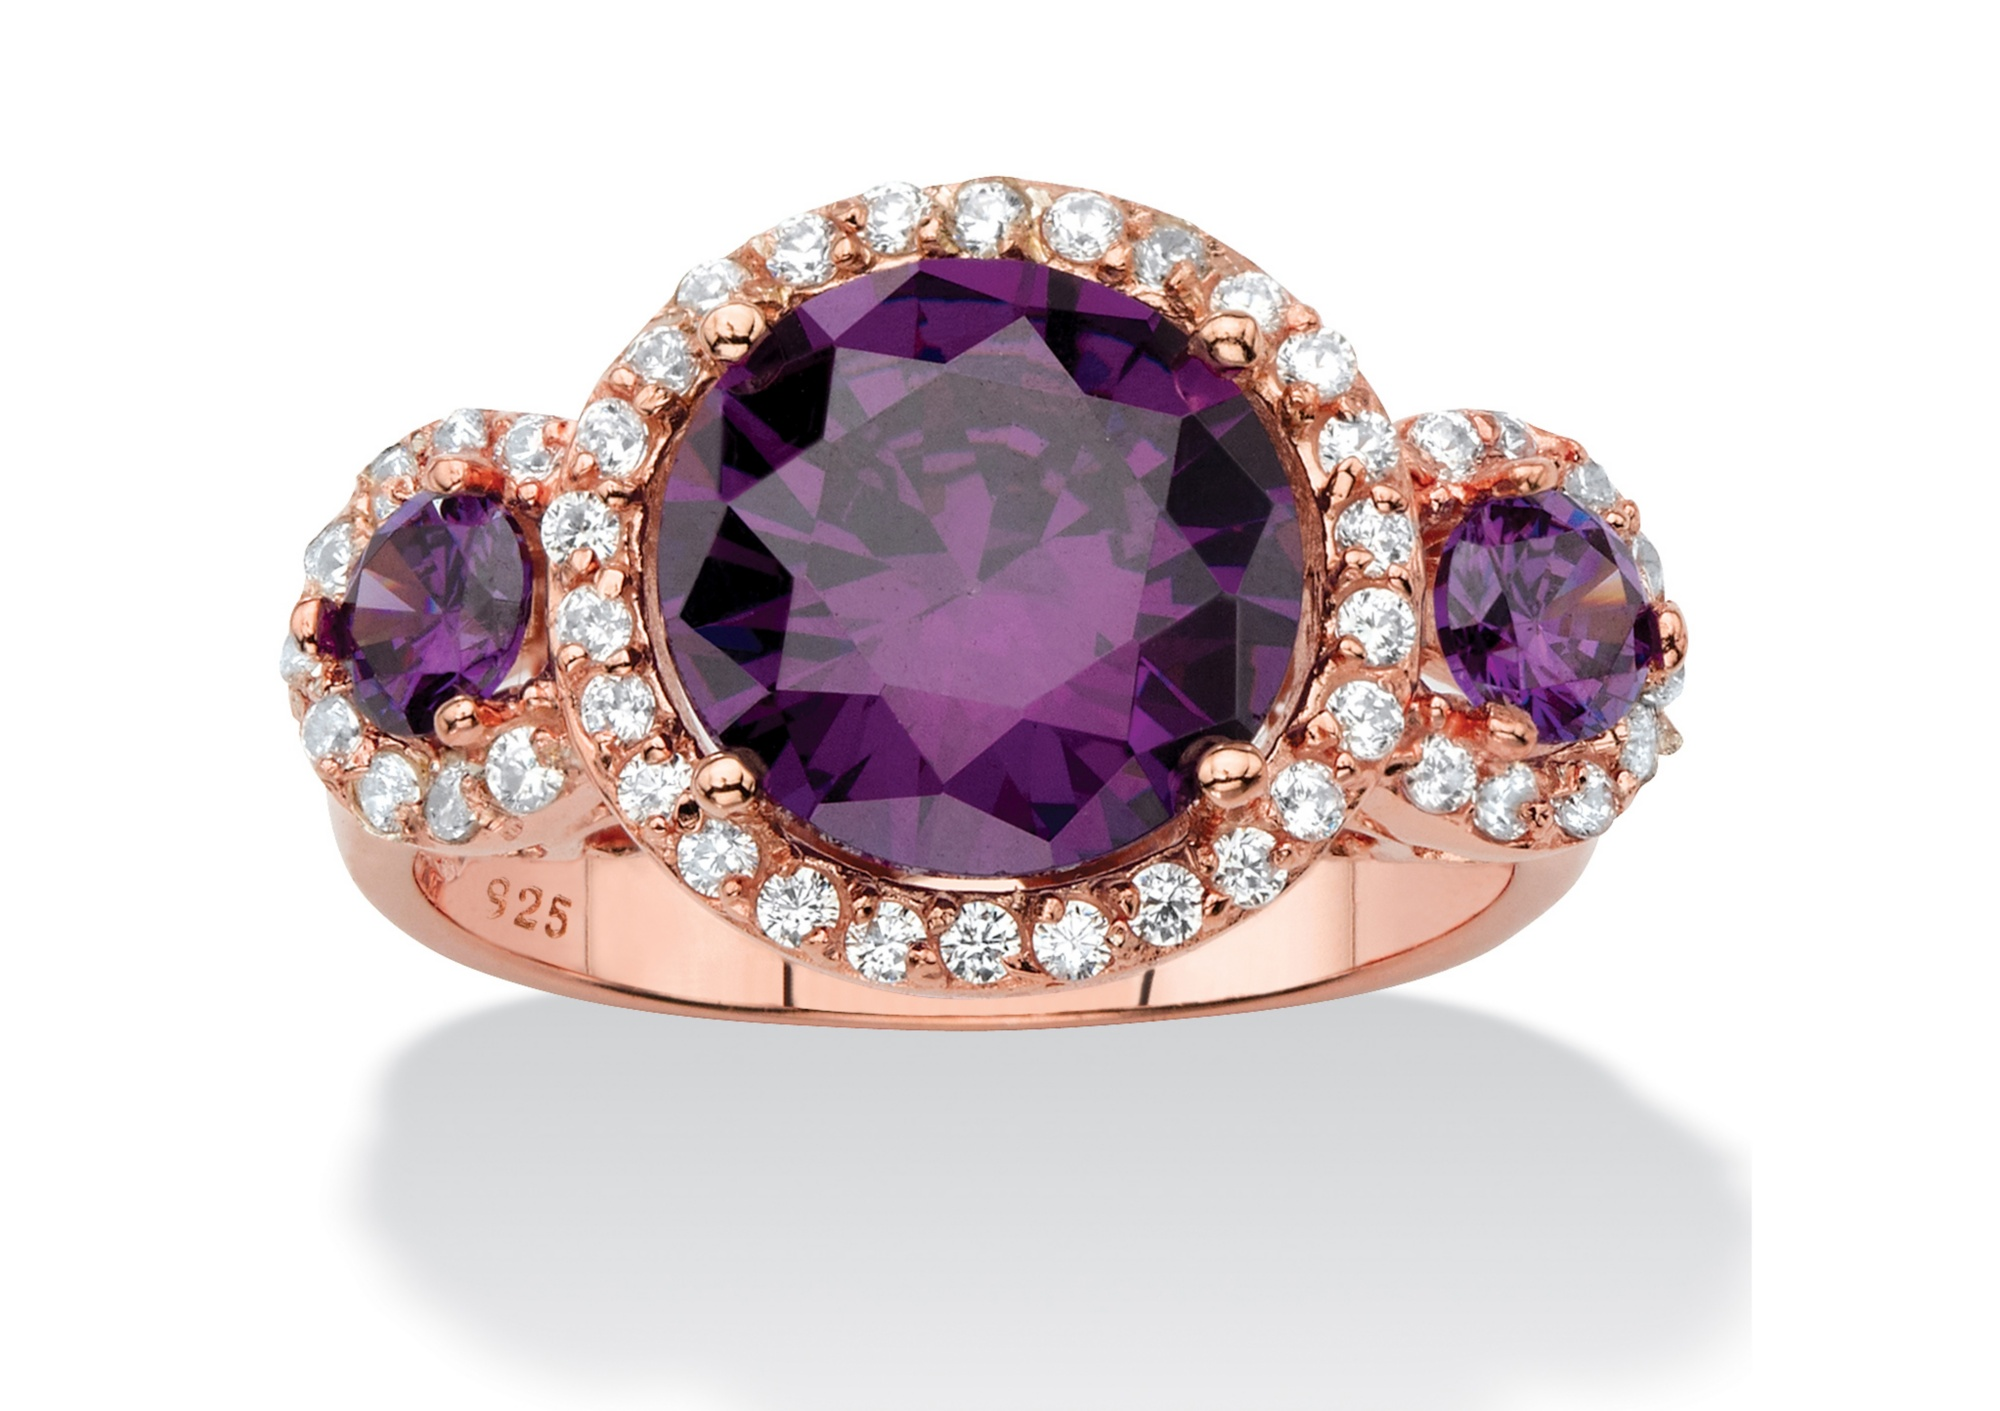 4.89 TCW Amethyst Purple Cubic Zirconia 3-Stone Halo Cocktail Ring in Rose Gold over Sterling Silver by PalmBeach Jewelry